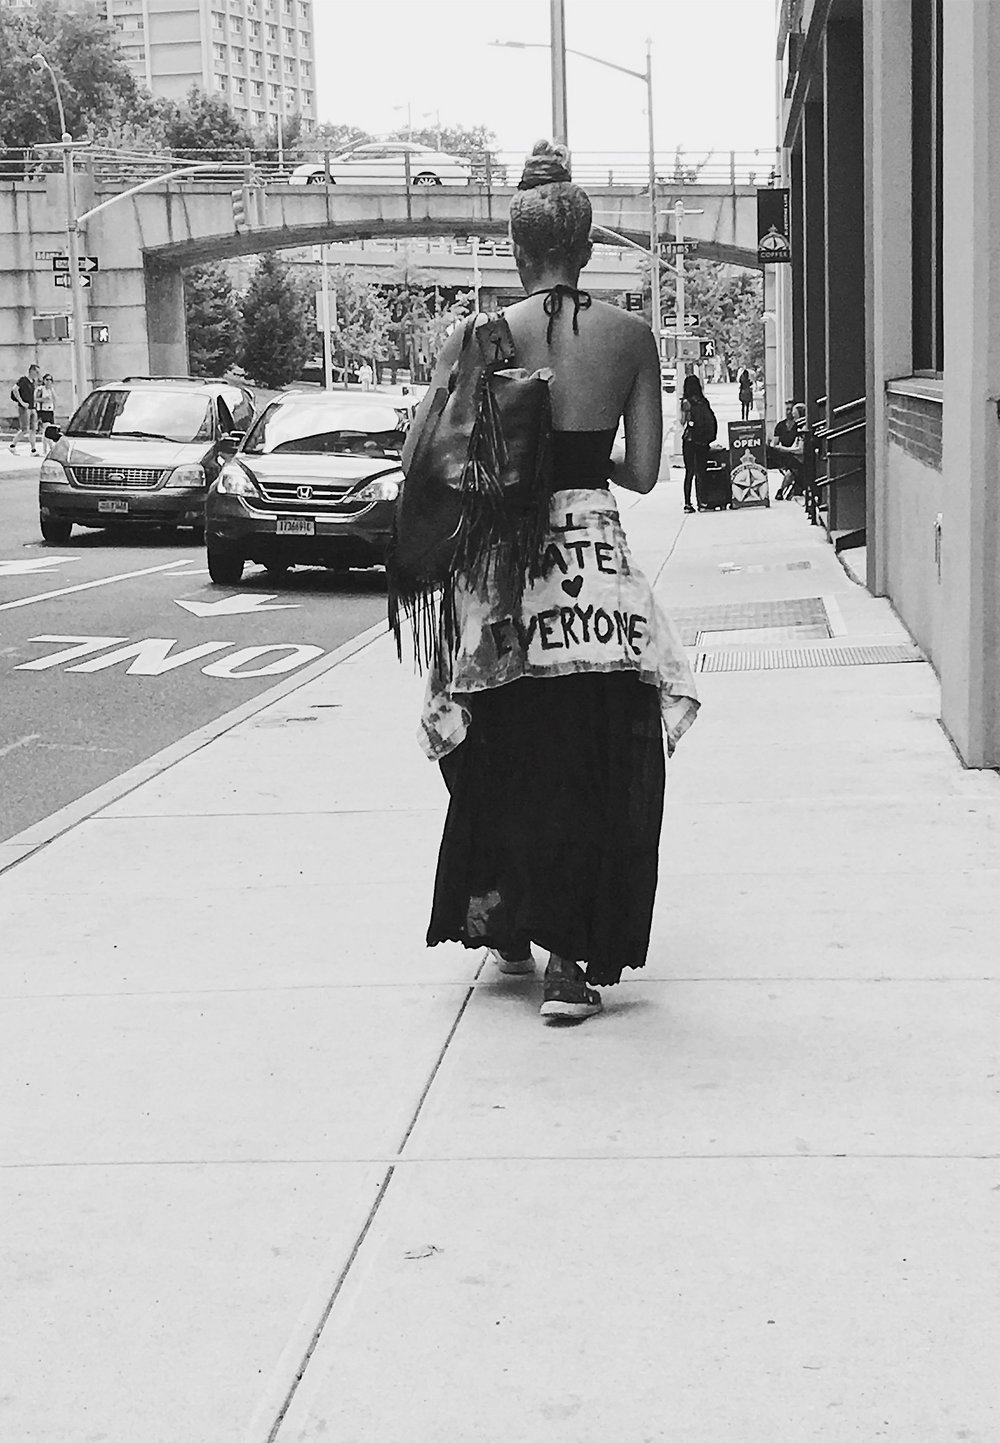 A New Yorker on a hot summer day, dressed in black with a personal fashion statement  {...love everyone}